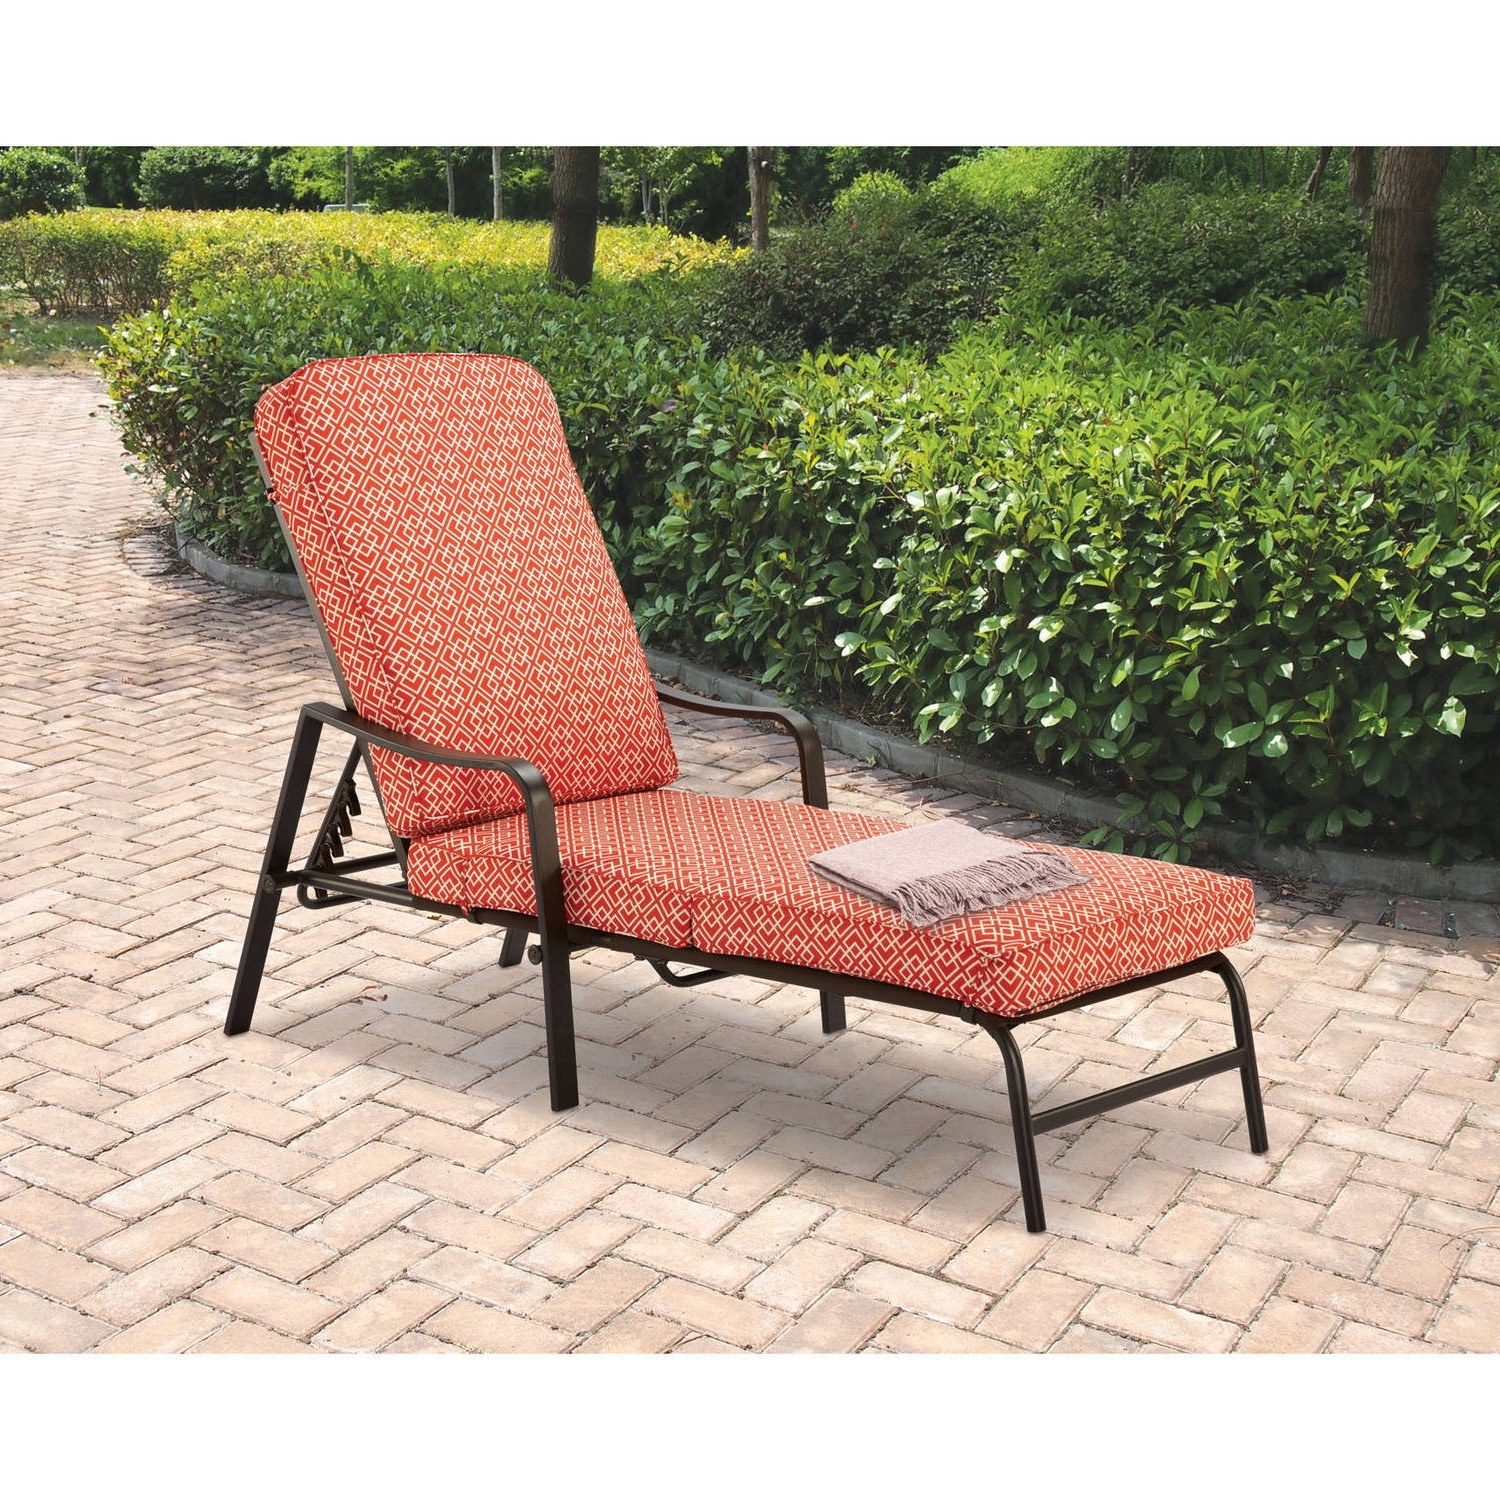 Favorite Mainstays Outdoor Chaise Lounge, Orange Geo Pattern – Walmart In Outdoor Chaise Lounge Chairs At Walmart (View 4 of 15)